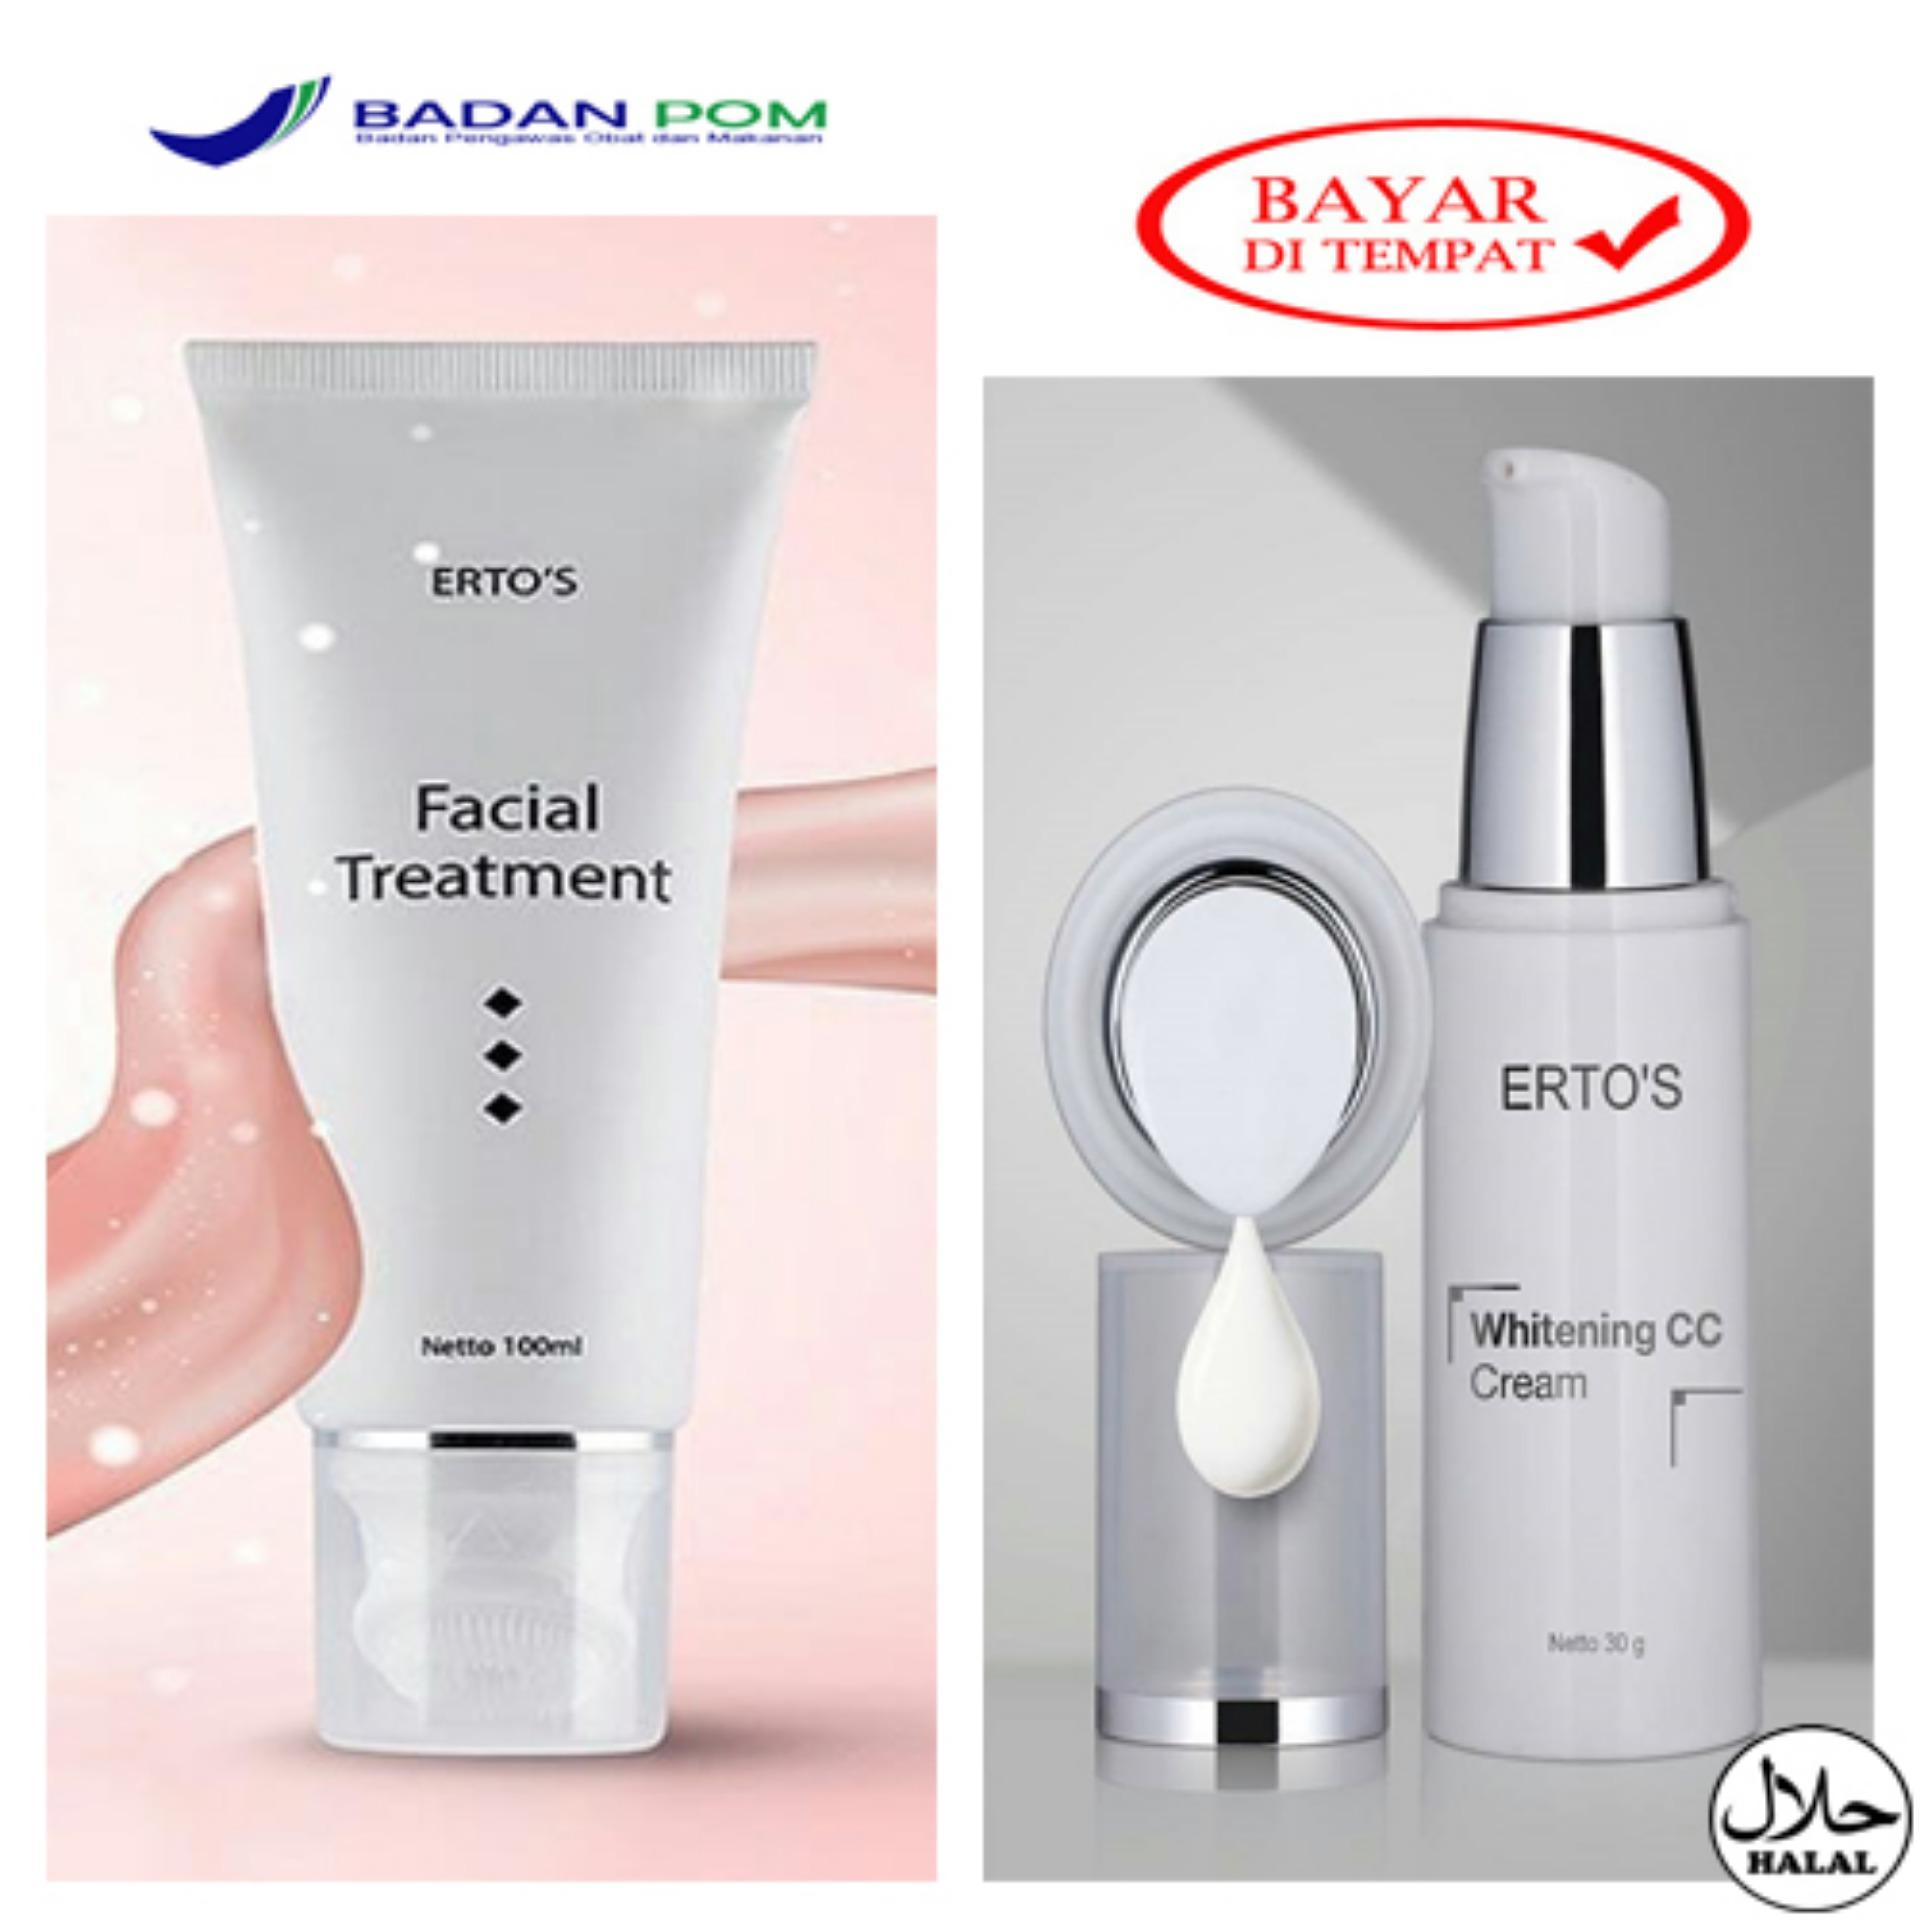 Fitur Ertos Original Whitening Treatment Paket Pemutih Cc Baked Powder All In 1 Hemat Facial Cream